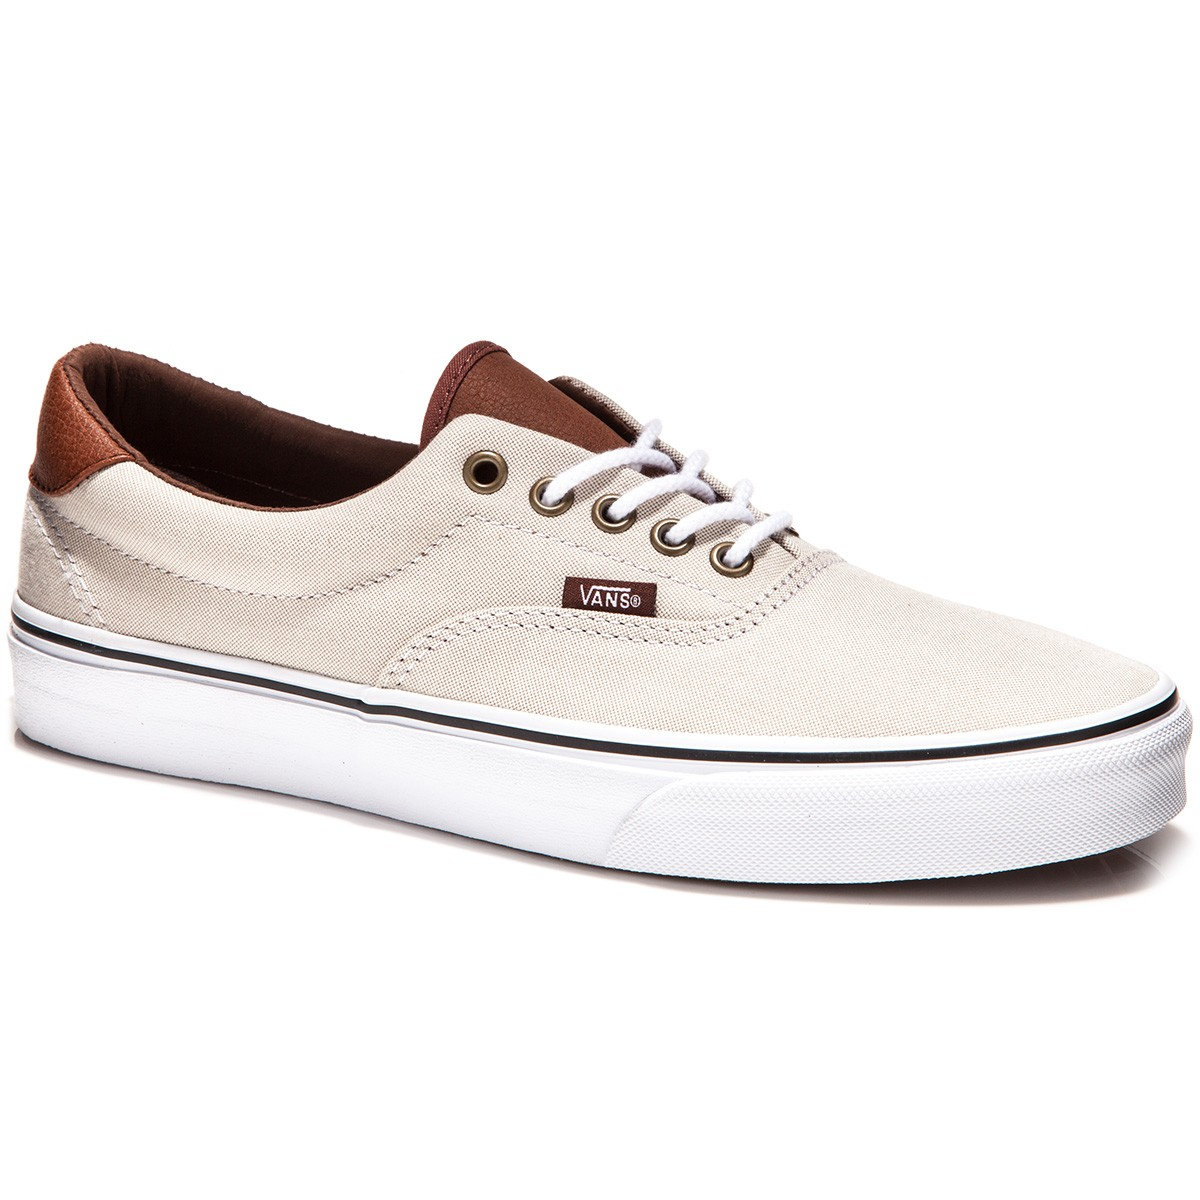 ff905f0cf8 Vans Era 59 Shoes